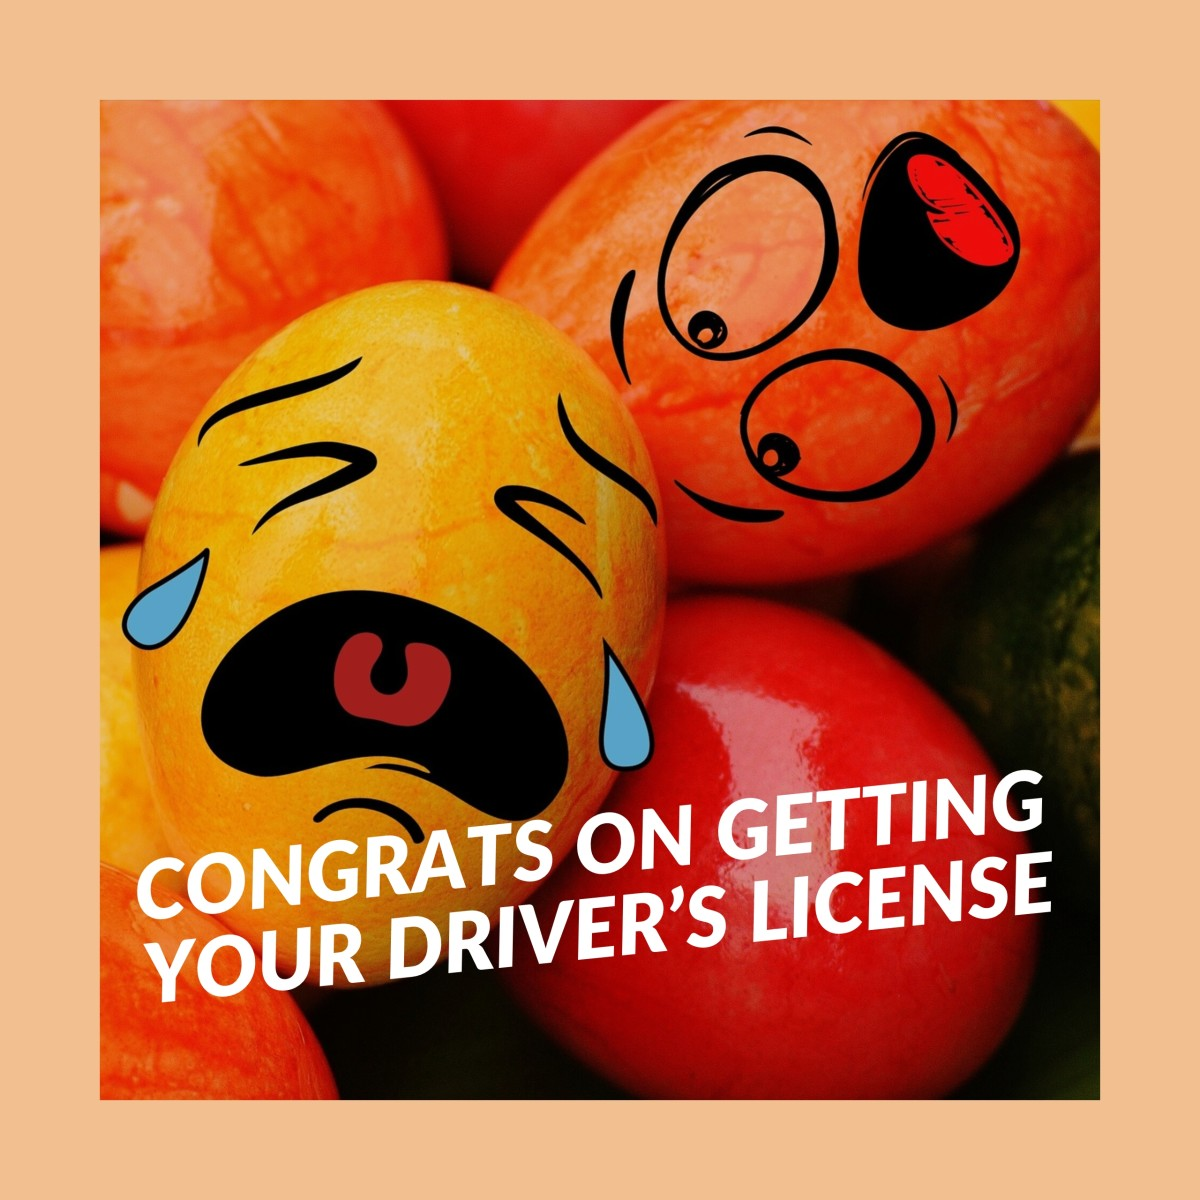 Congrats on getting your driver's license